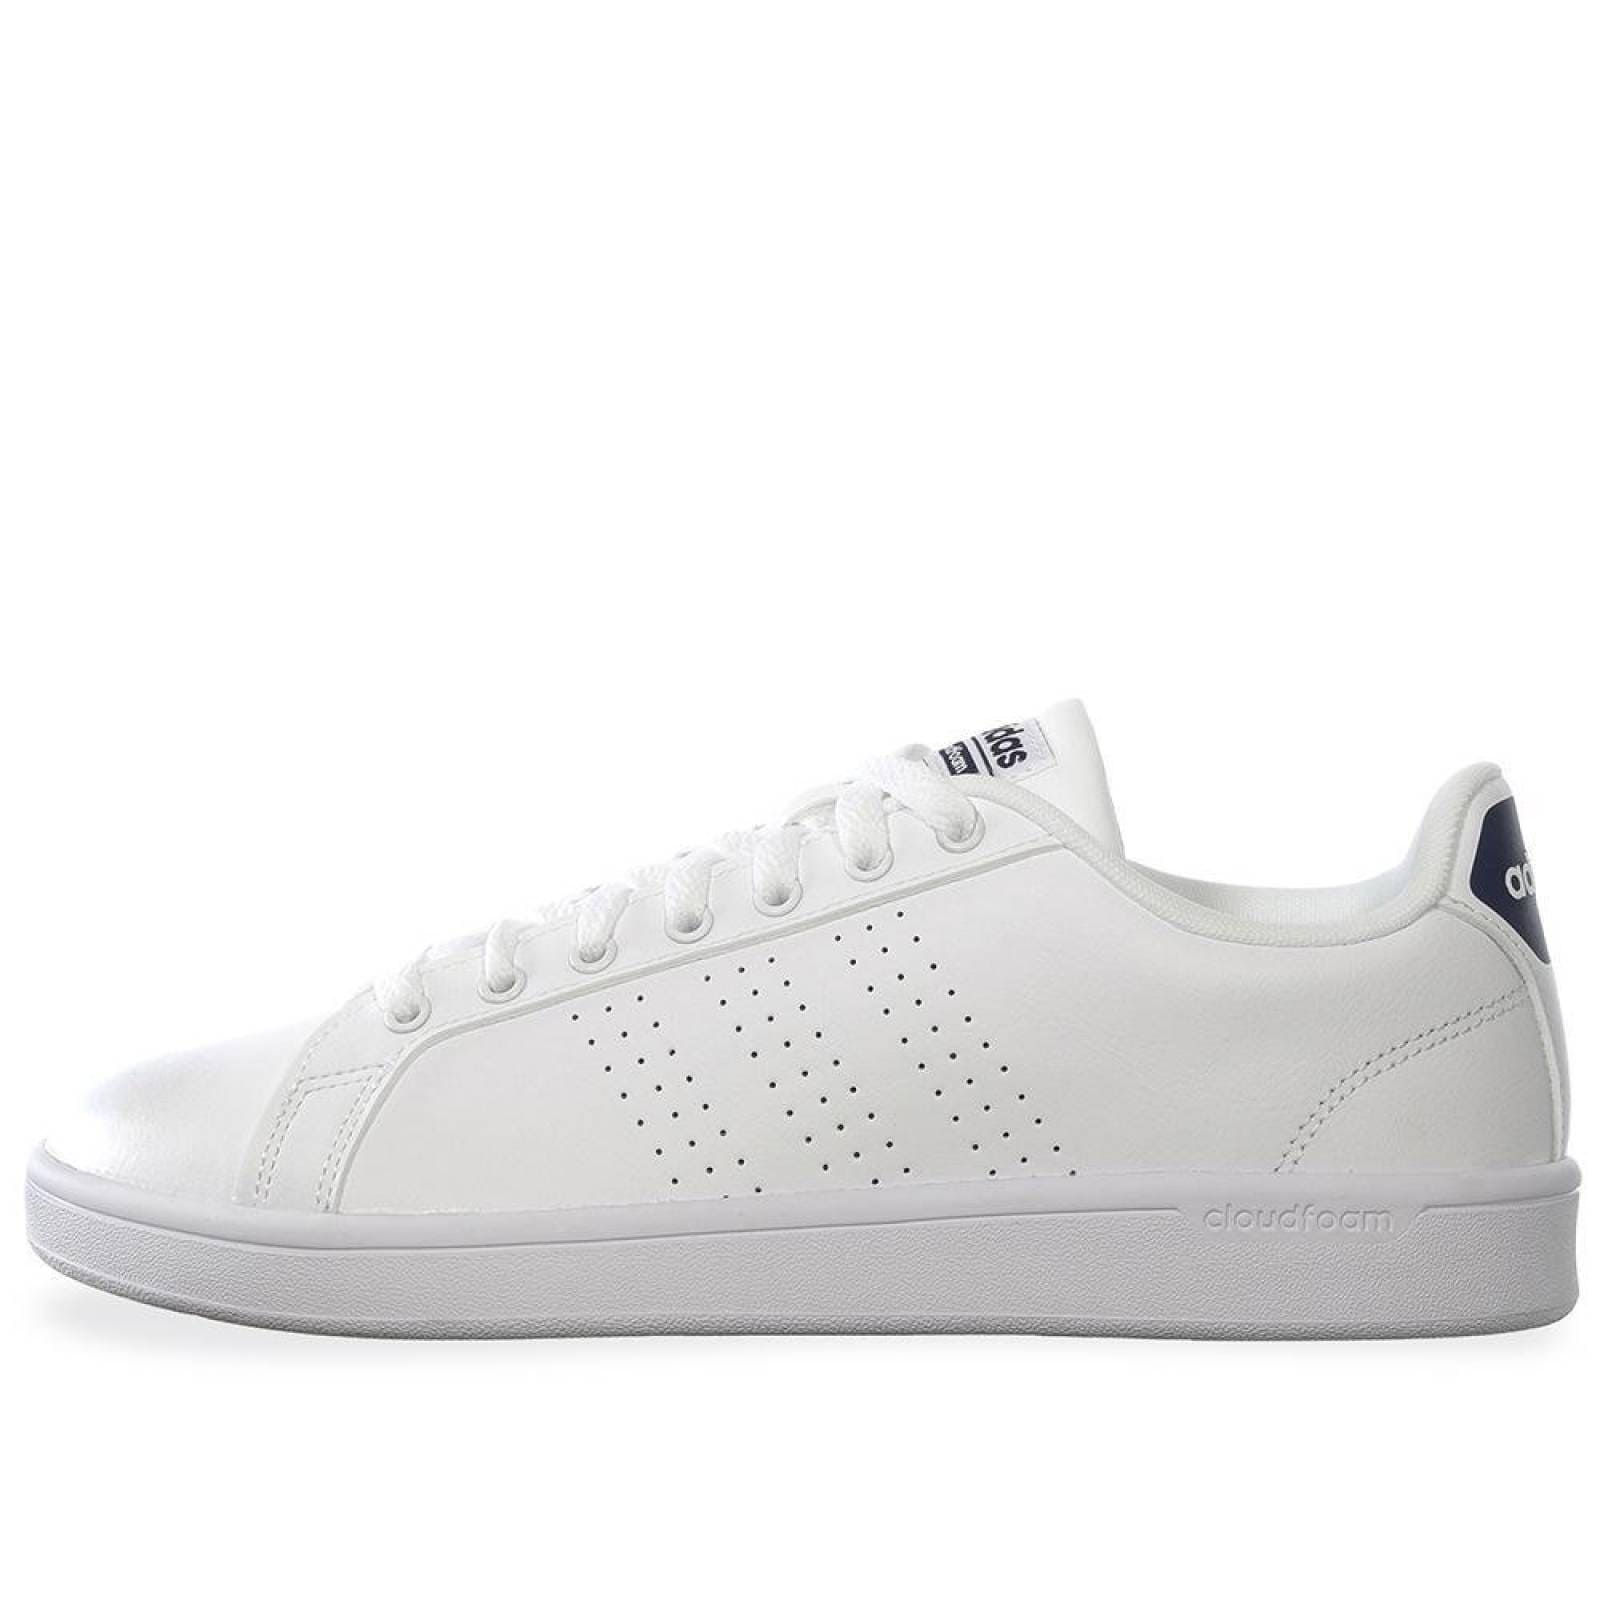 Tenis Adidas CF Advantage Clean - BB9624 - Blanco - Hombre